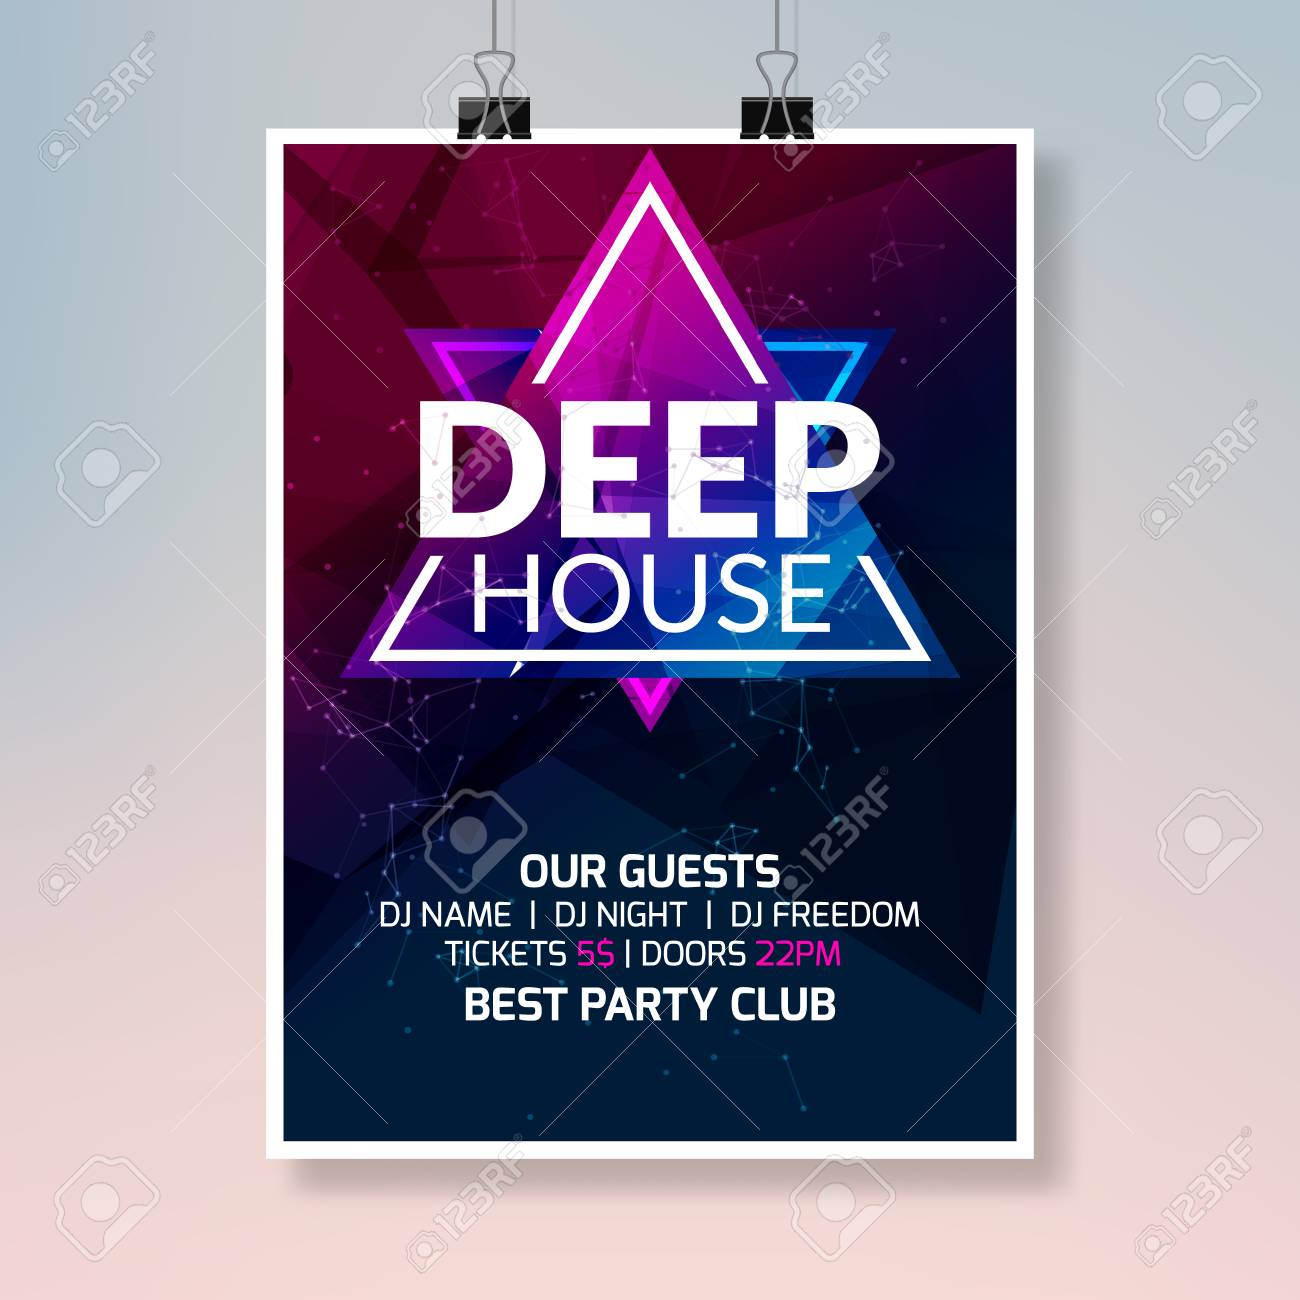 Deep House Dance Music Poster Music Party Flyer Banner Design Royalty Free Cliparts Vectors And Stock Illustration Image 102082083